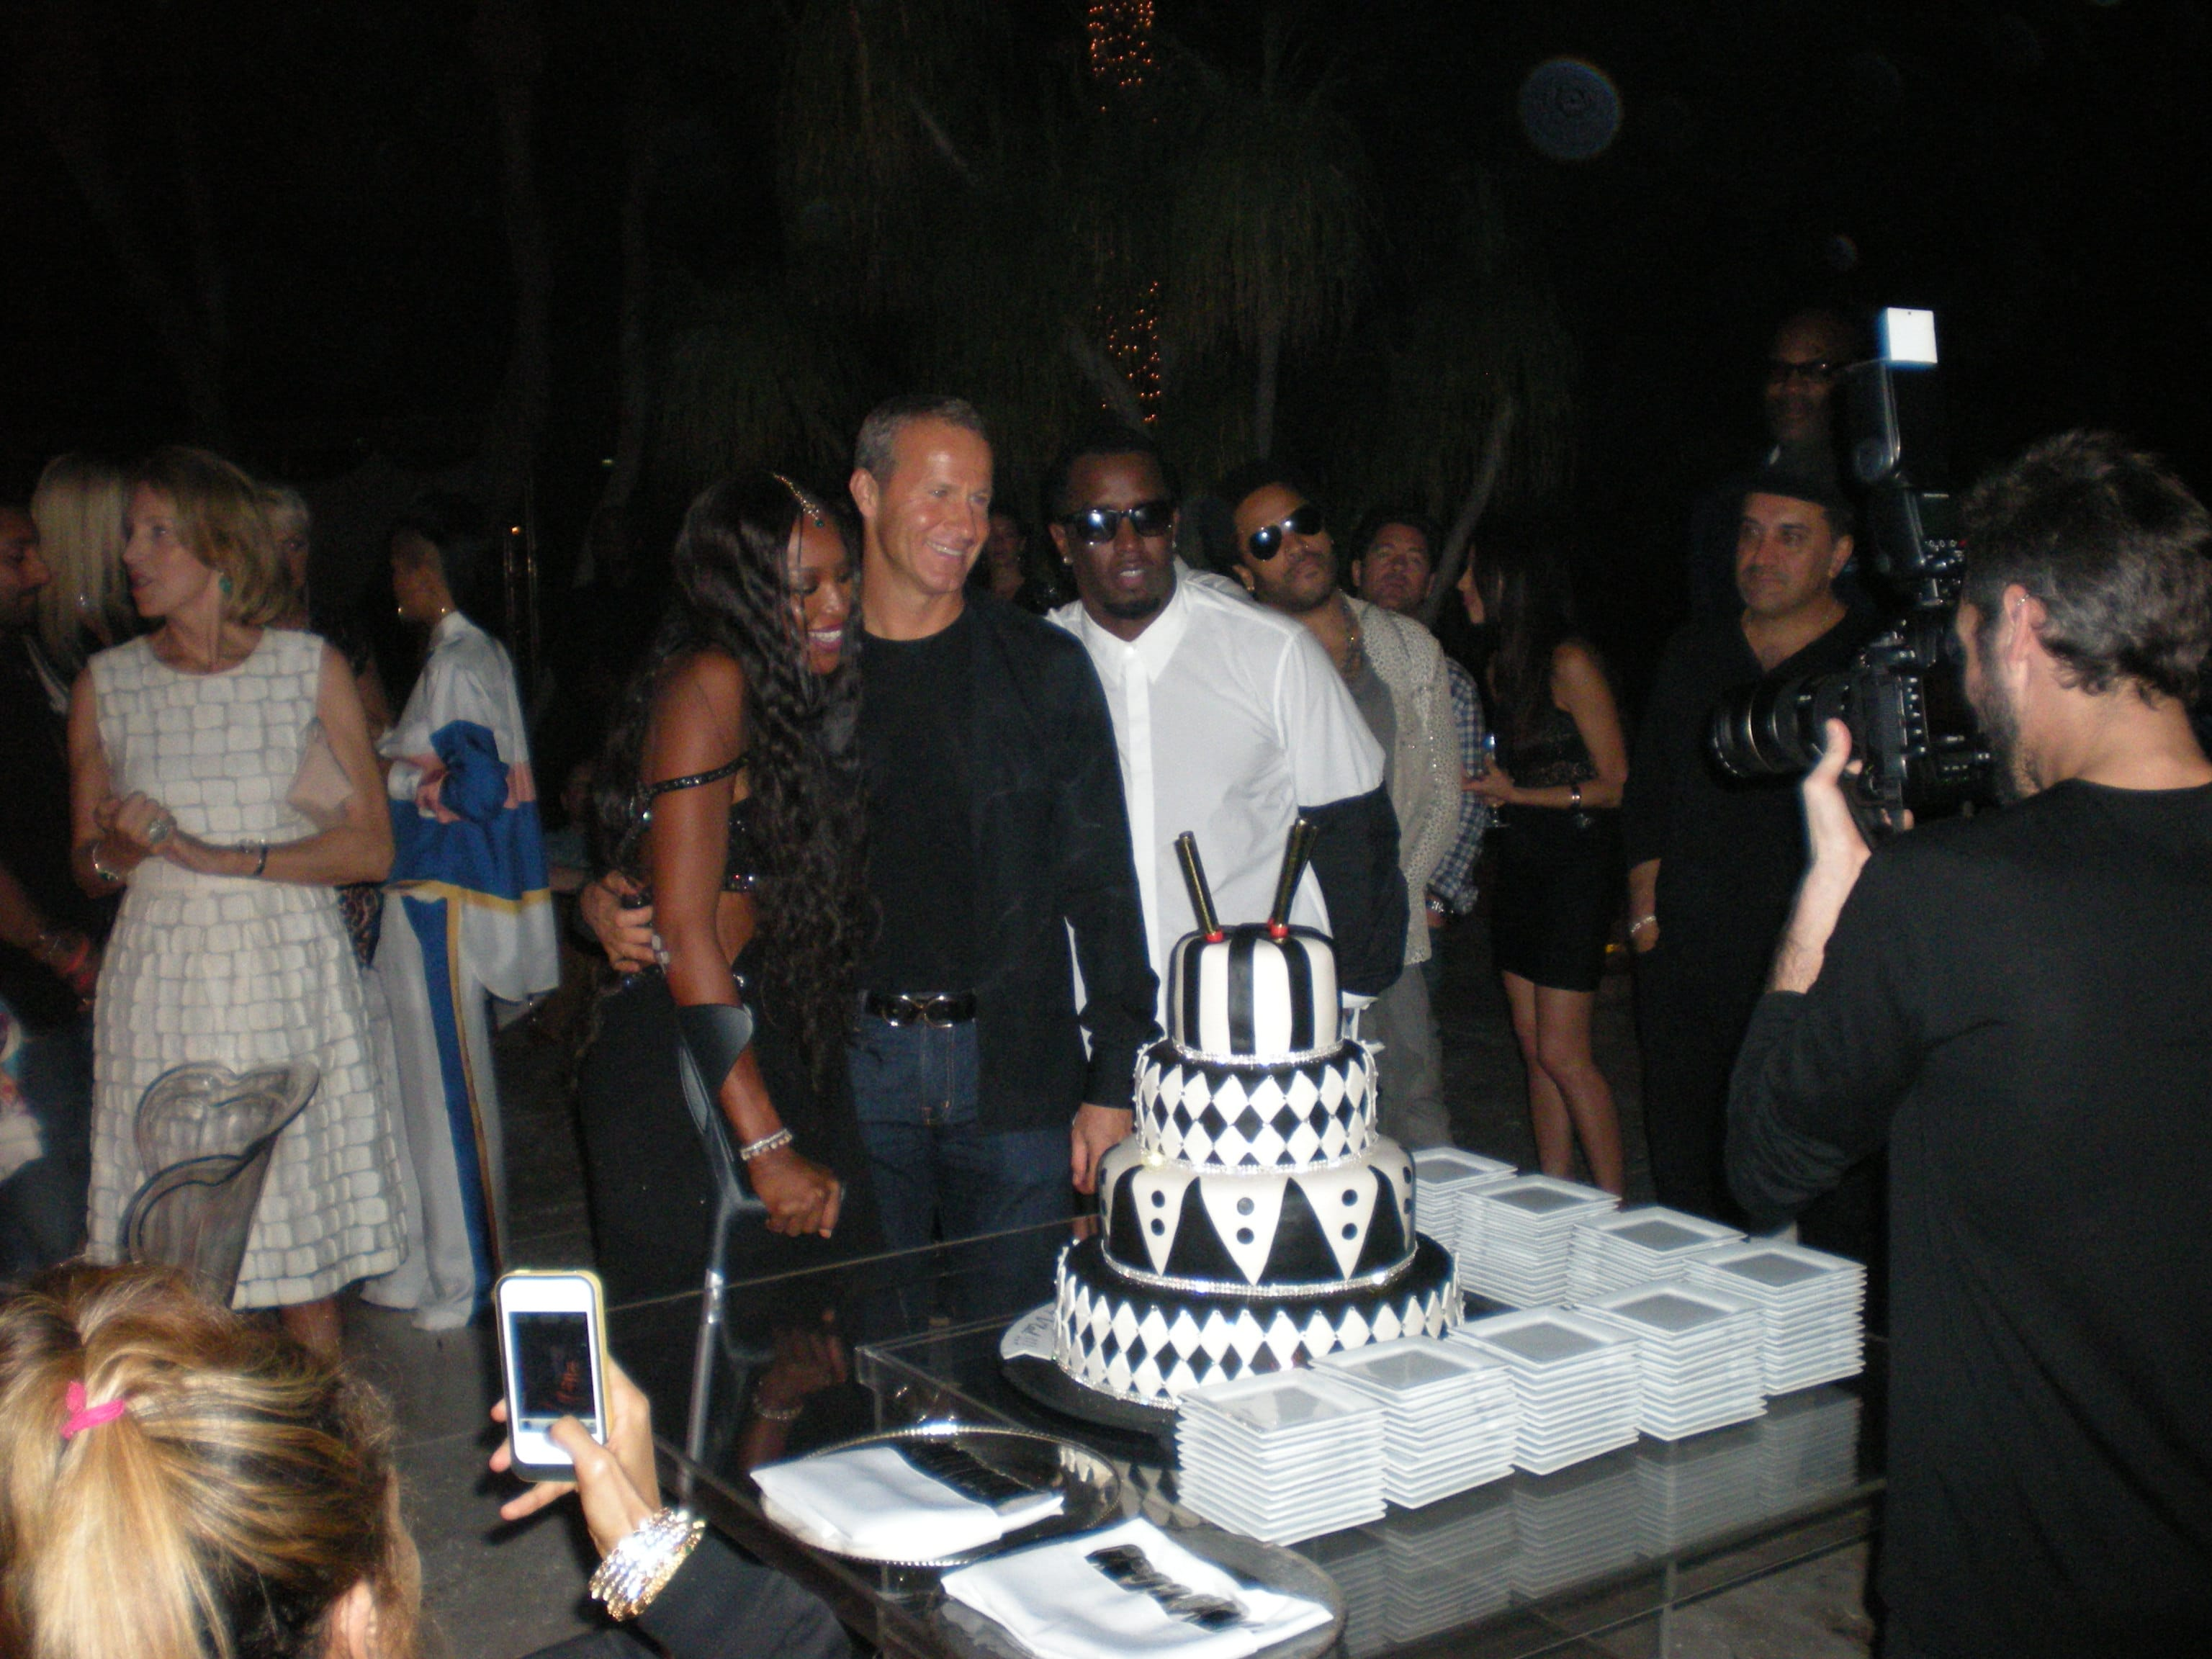 Naomi Campbell, Vladislav Doronin and Sean Combs